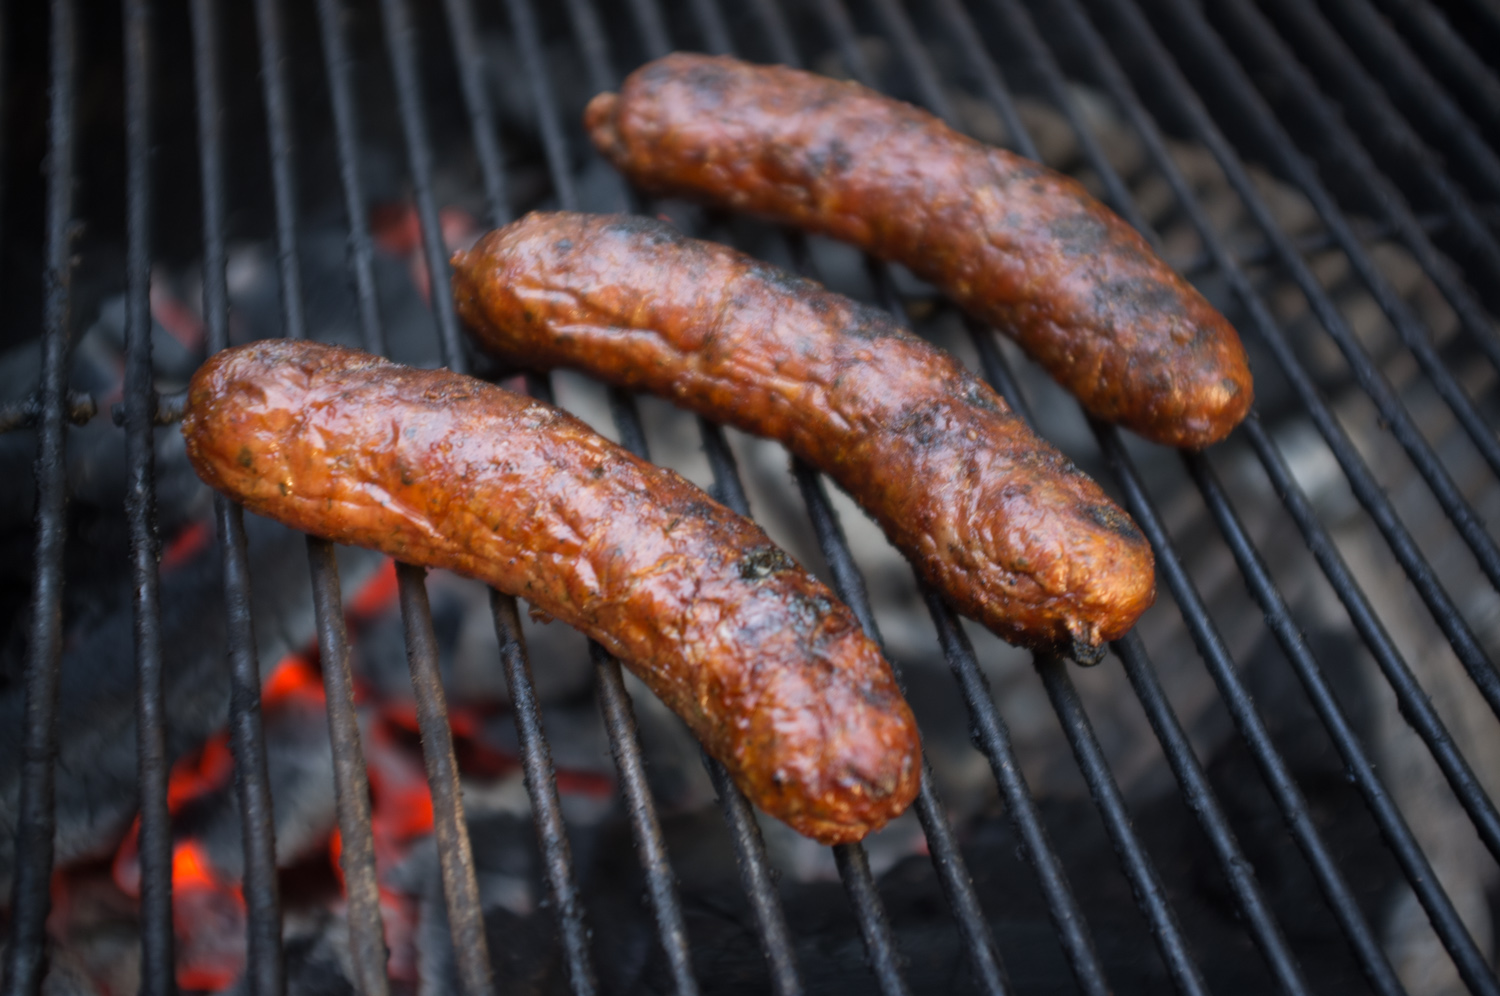 Gordy's sausages on the Weber.